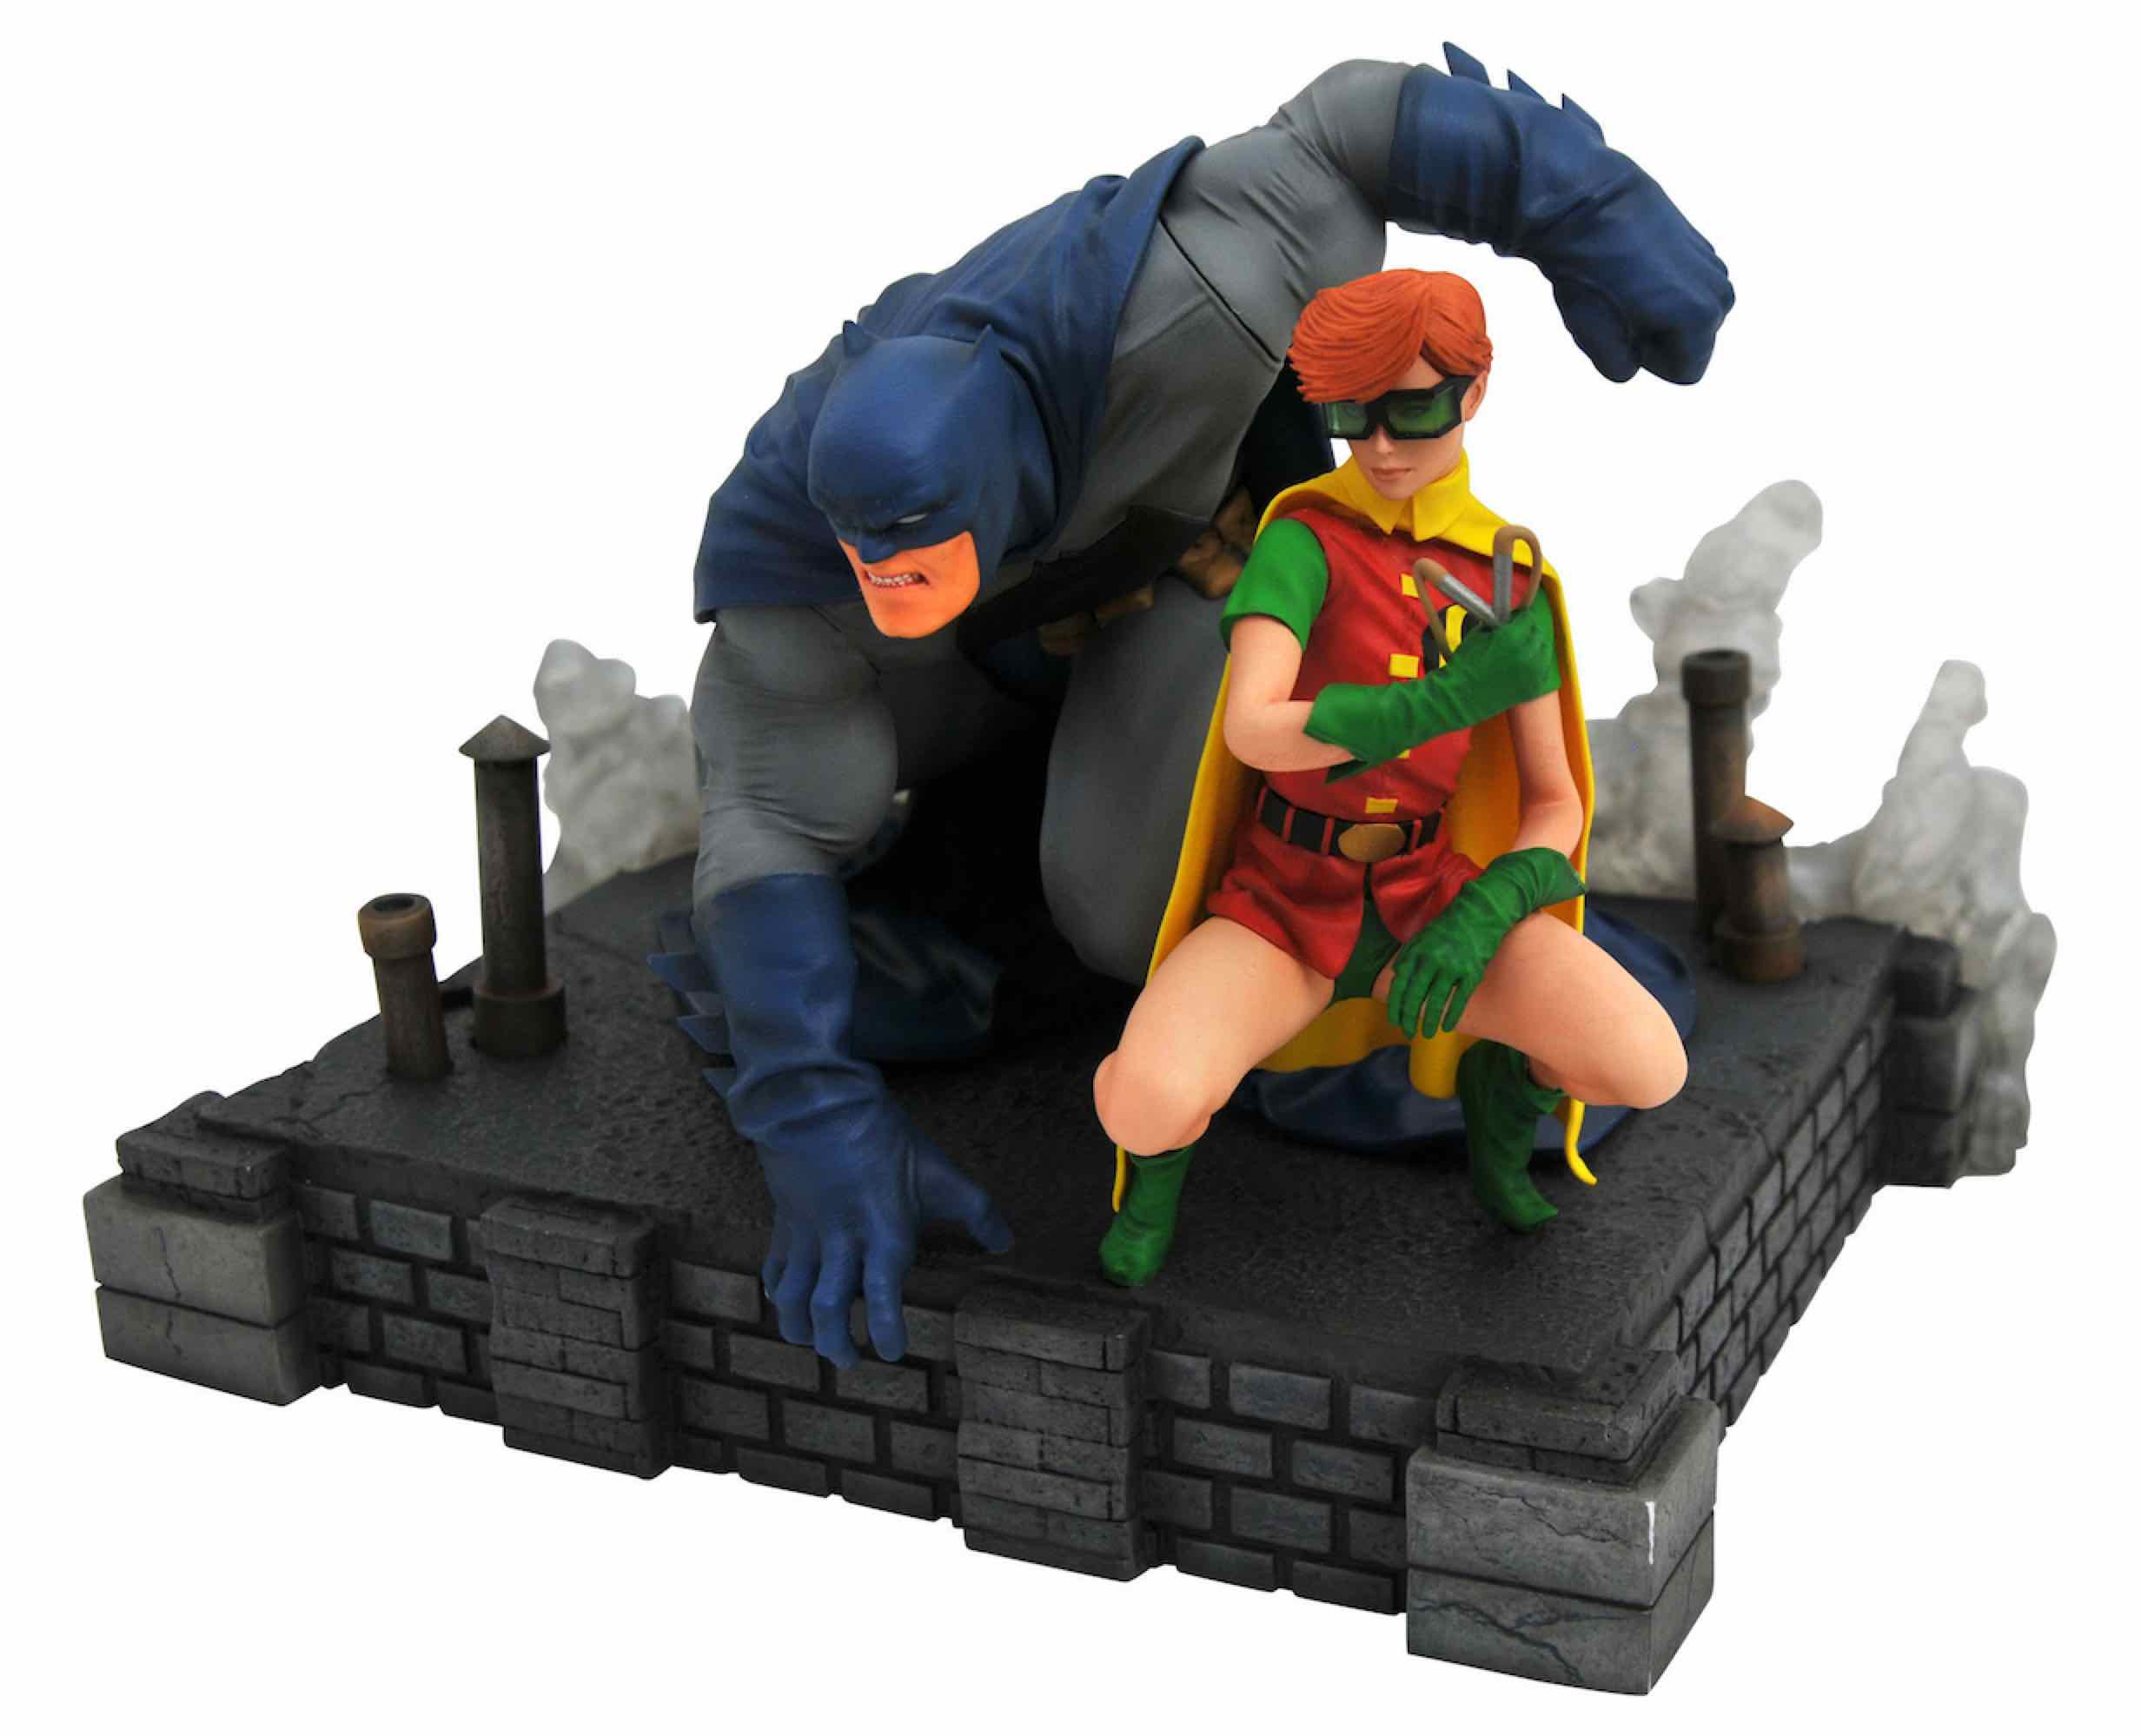 BATMAN Y ROBIN PVC DIORAMA ESTATUA 20 CM THE DARK KNIGHT RETURNS DC COMICS GALLERY